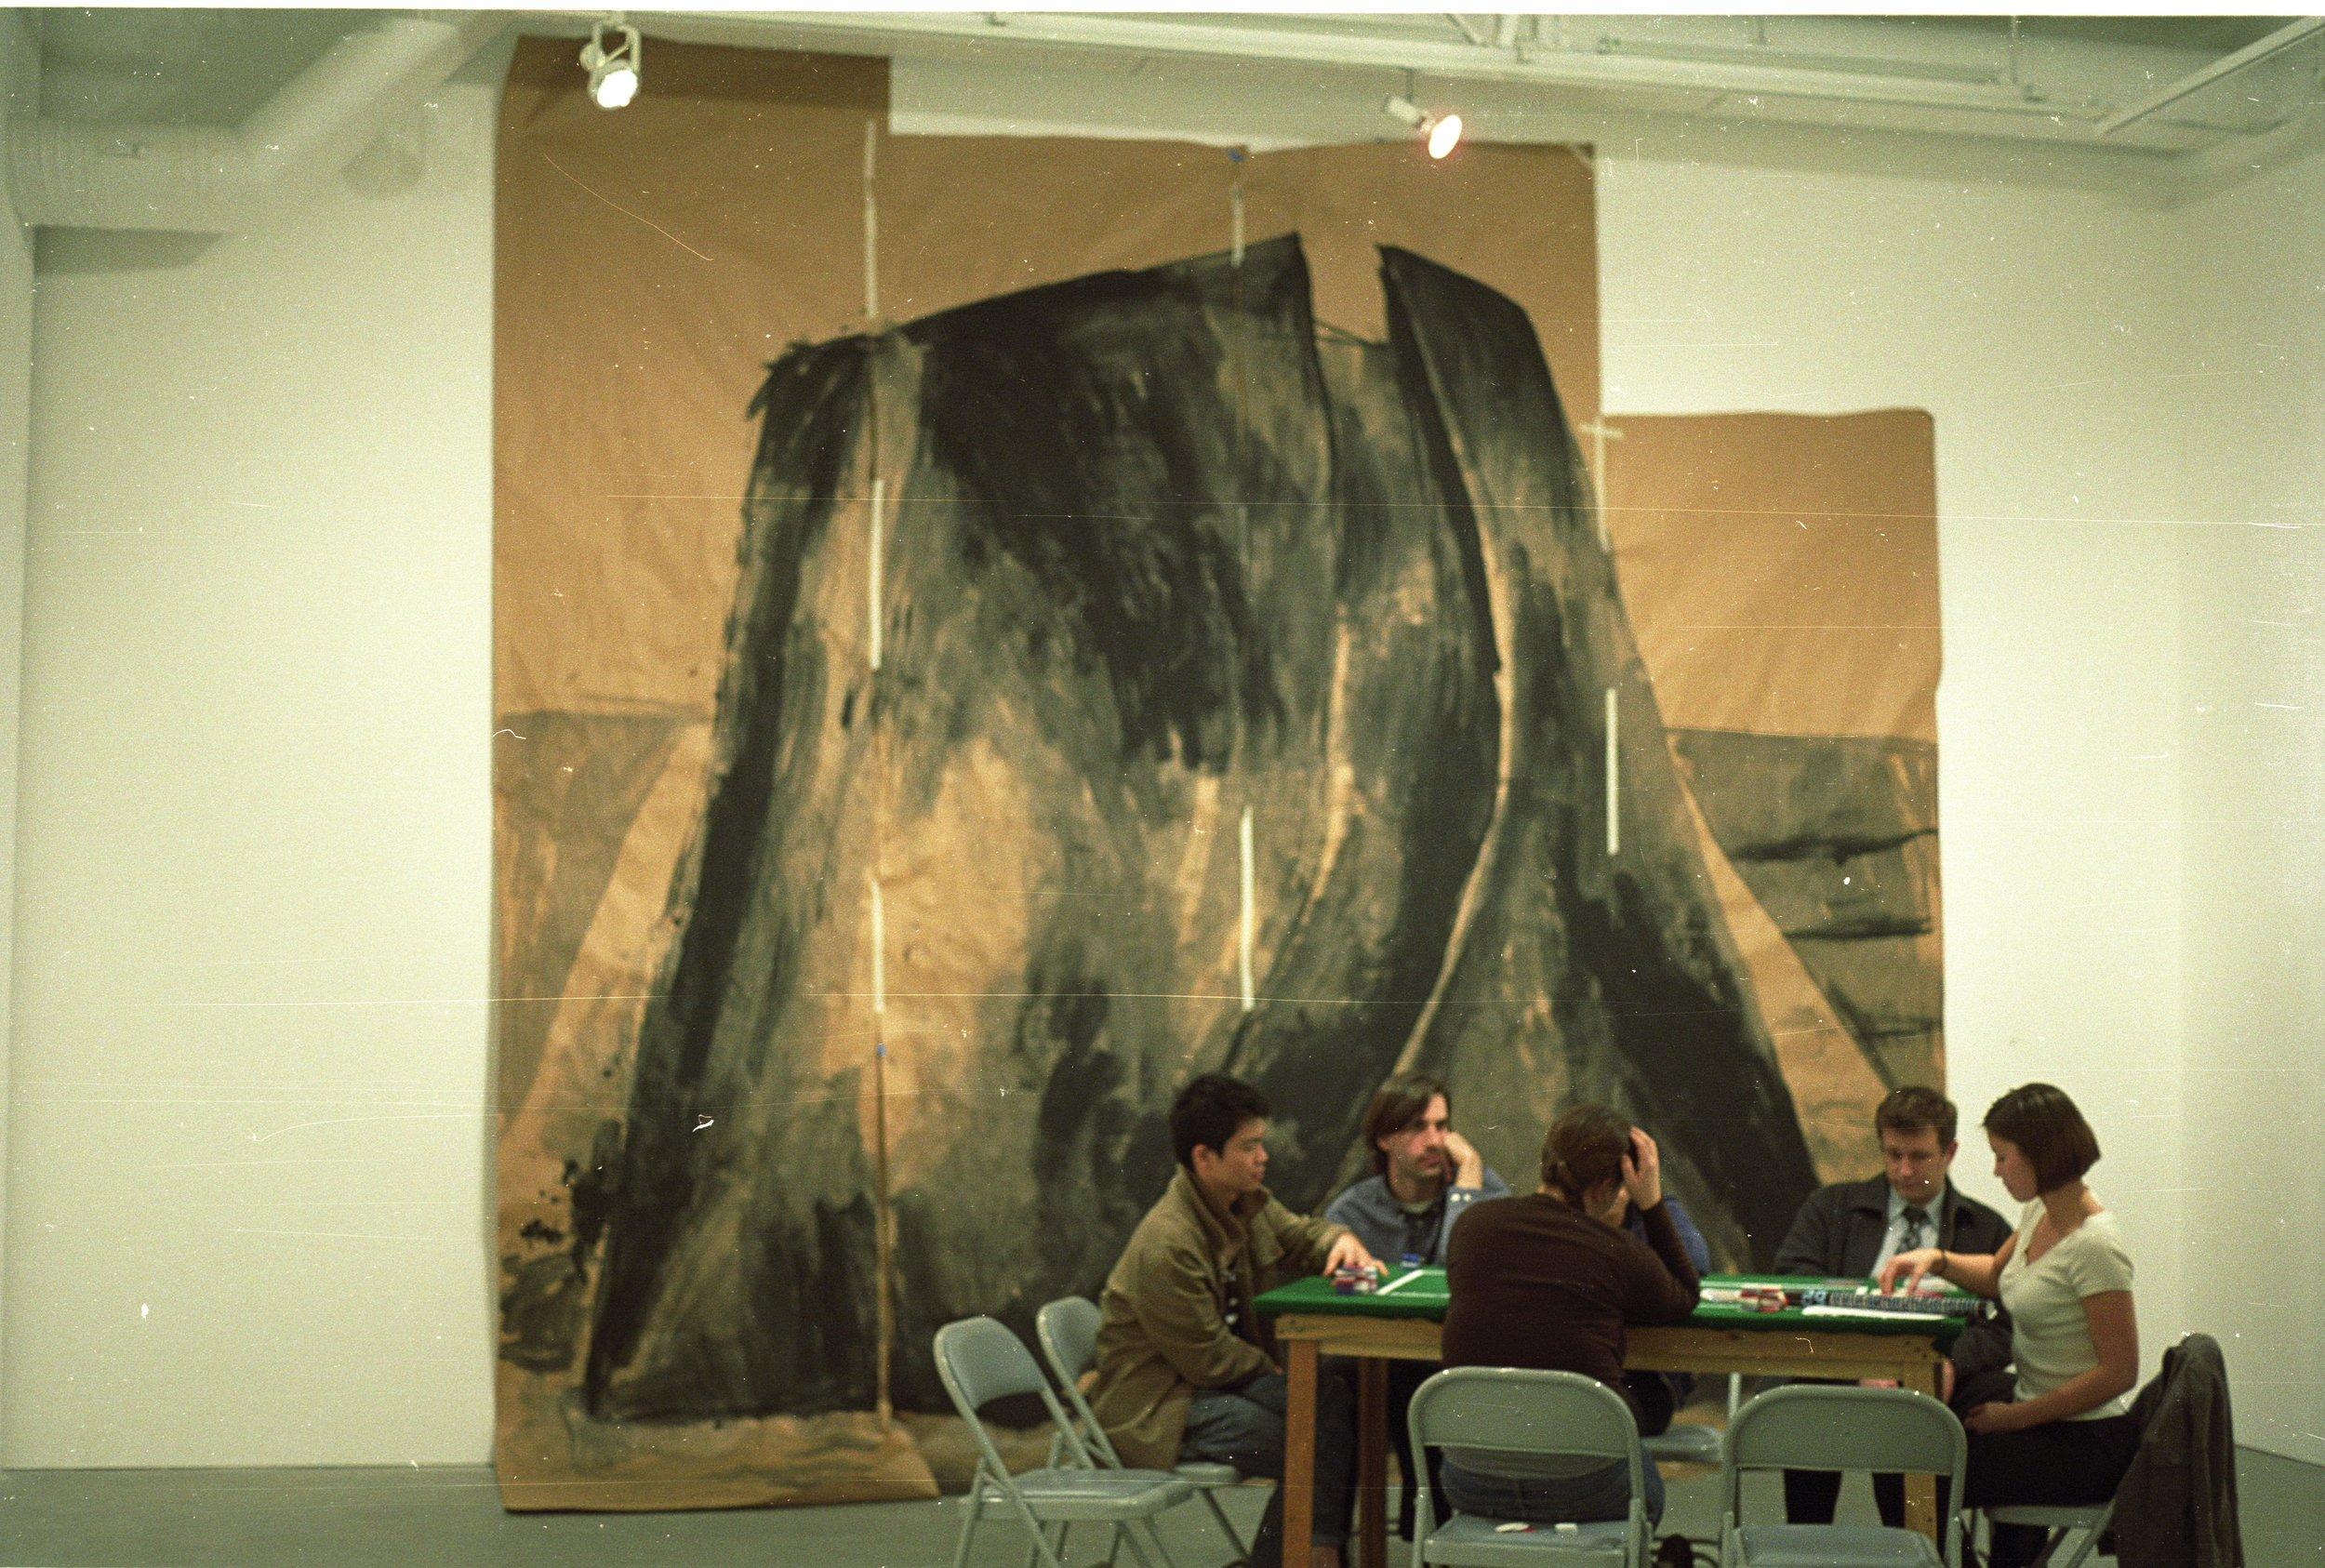 Installation view of  Richard Serra  in  Can We Sit on It,  New Wight Gallery, University of California, Los Angeles, CA.